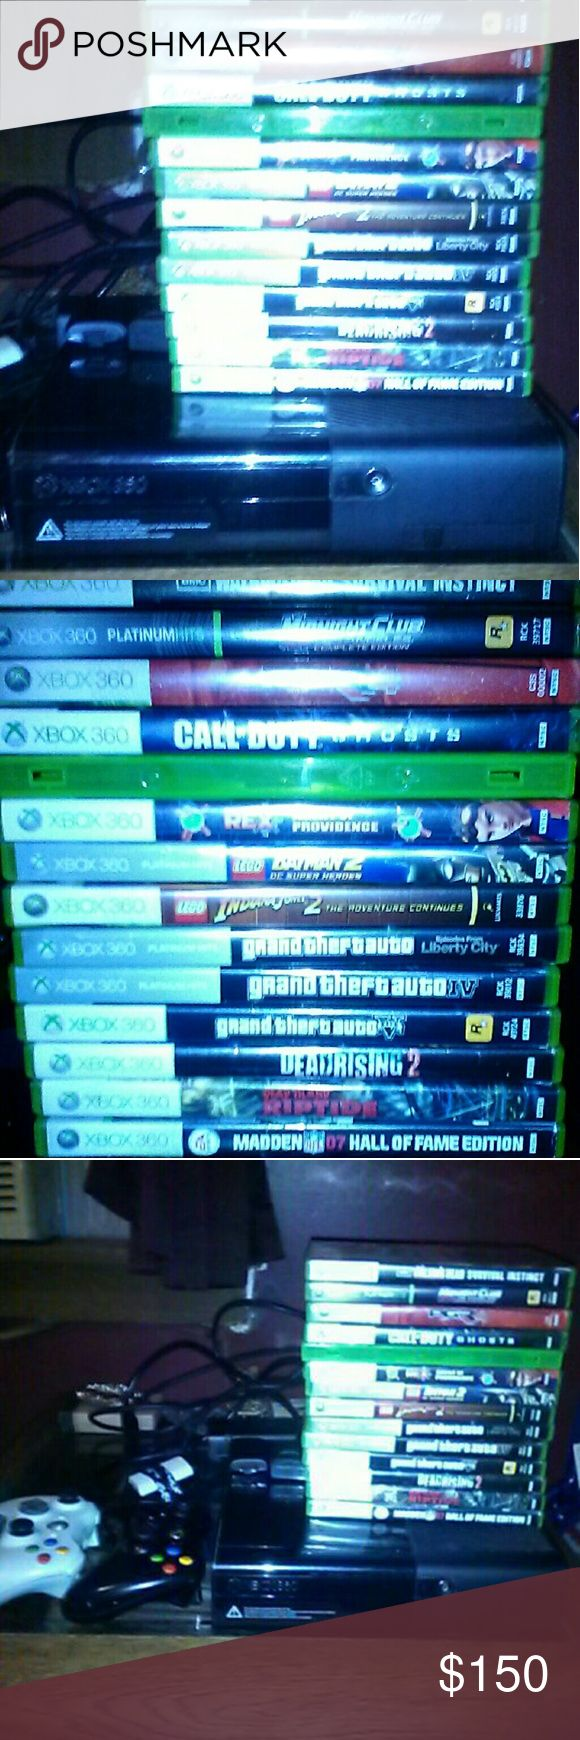 Xbox 360 It is a year old works good 16 games 2 controllers 3 battery packs and charger and all the cords games are scratched but still work. One battery pack has tape around it to keep it closed Other